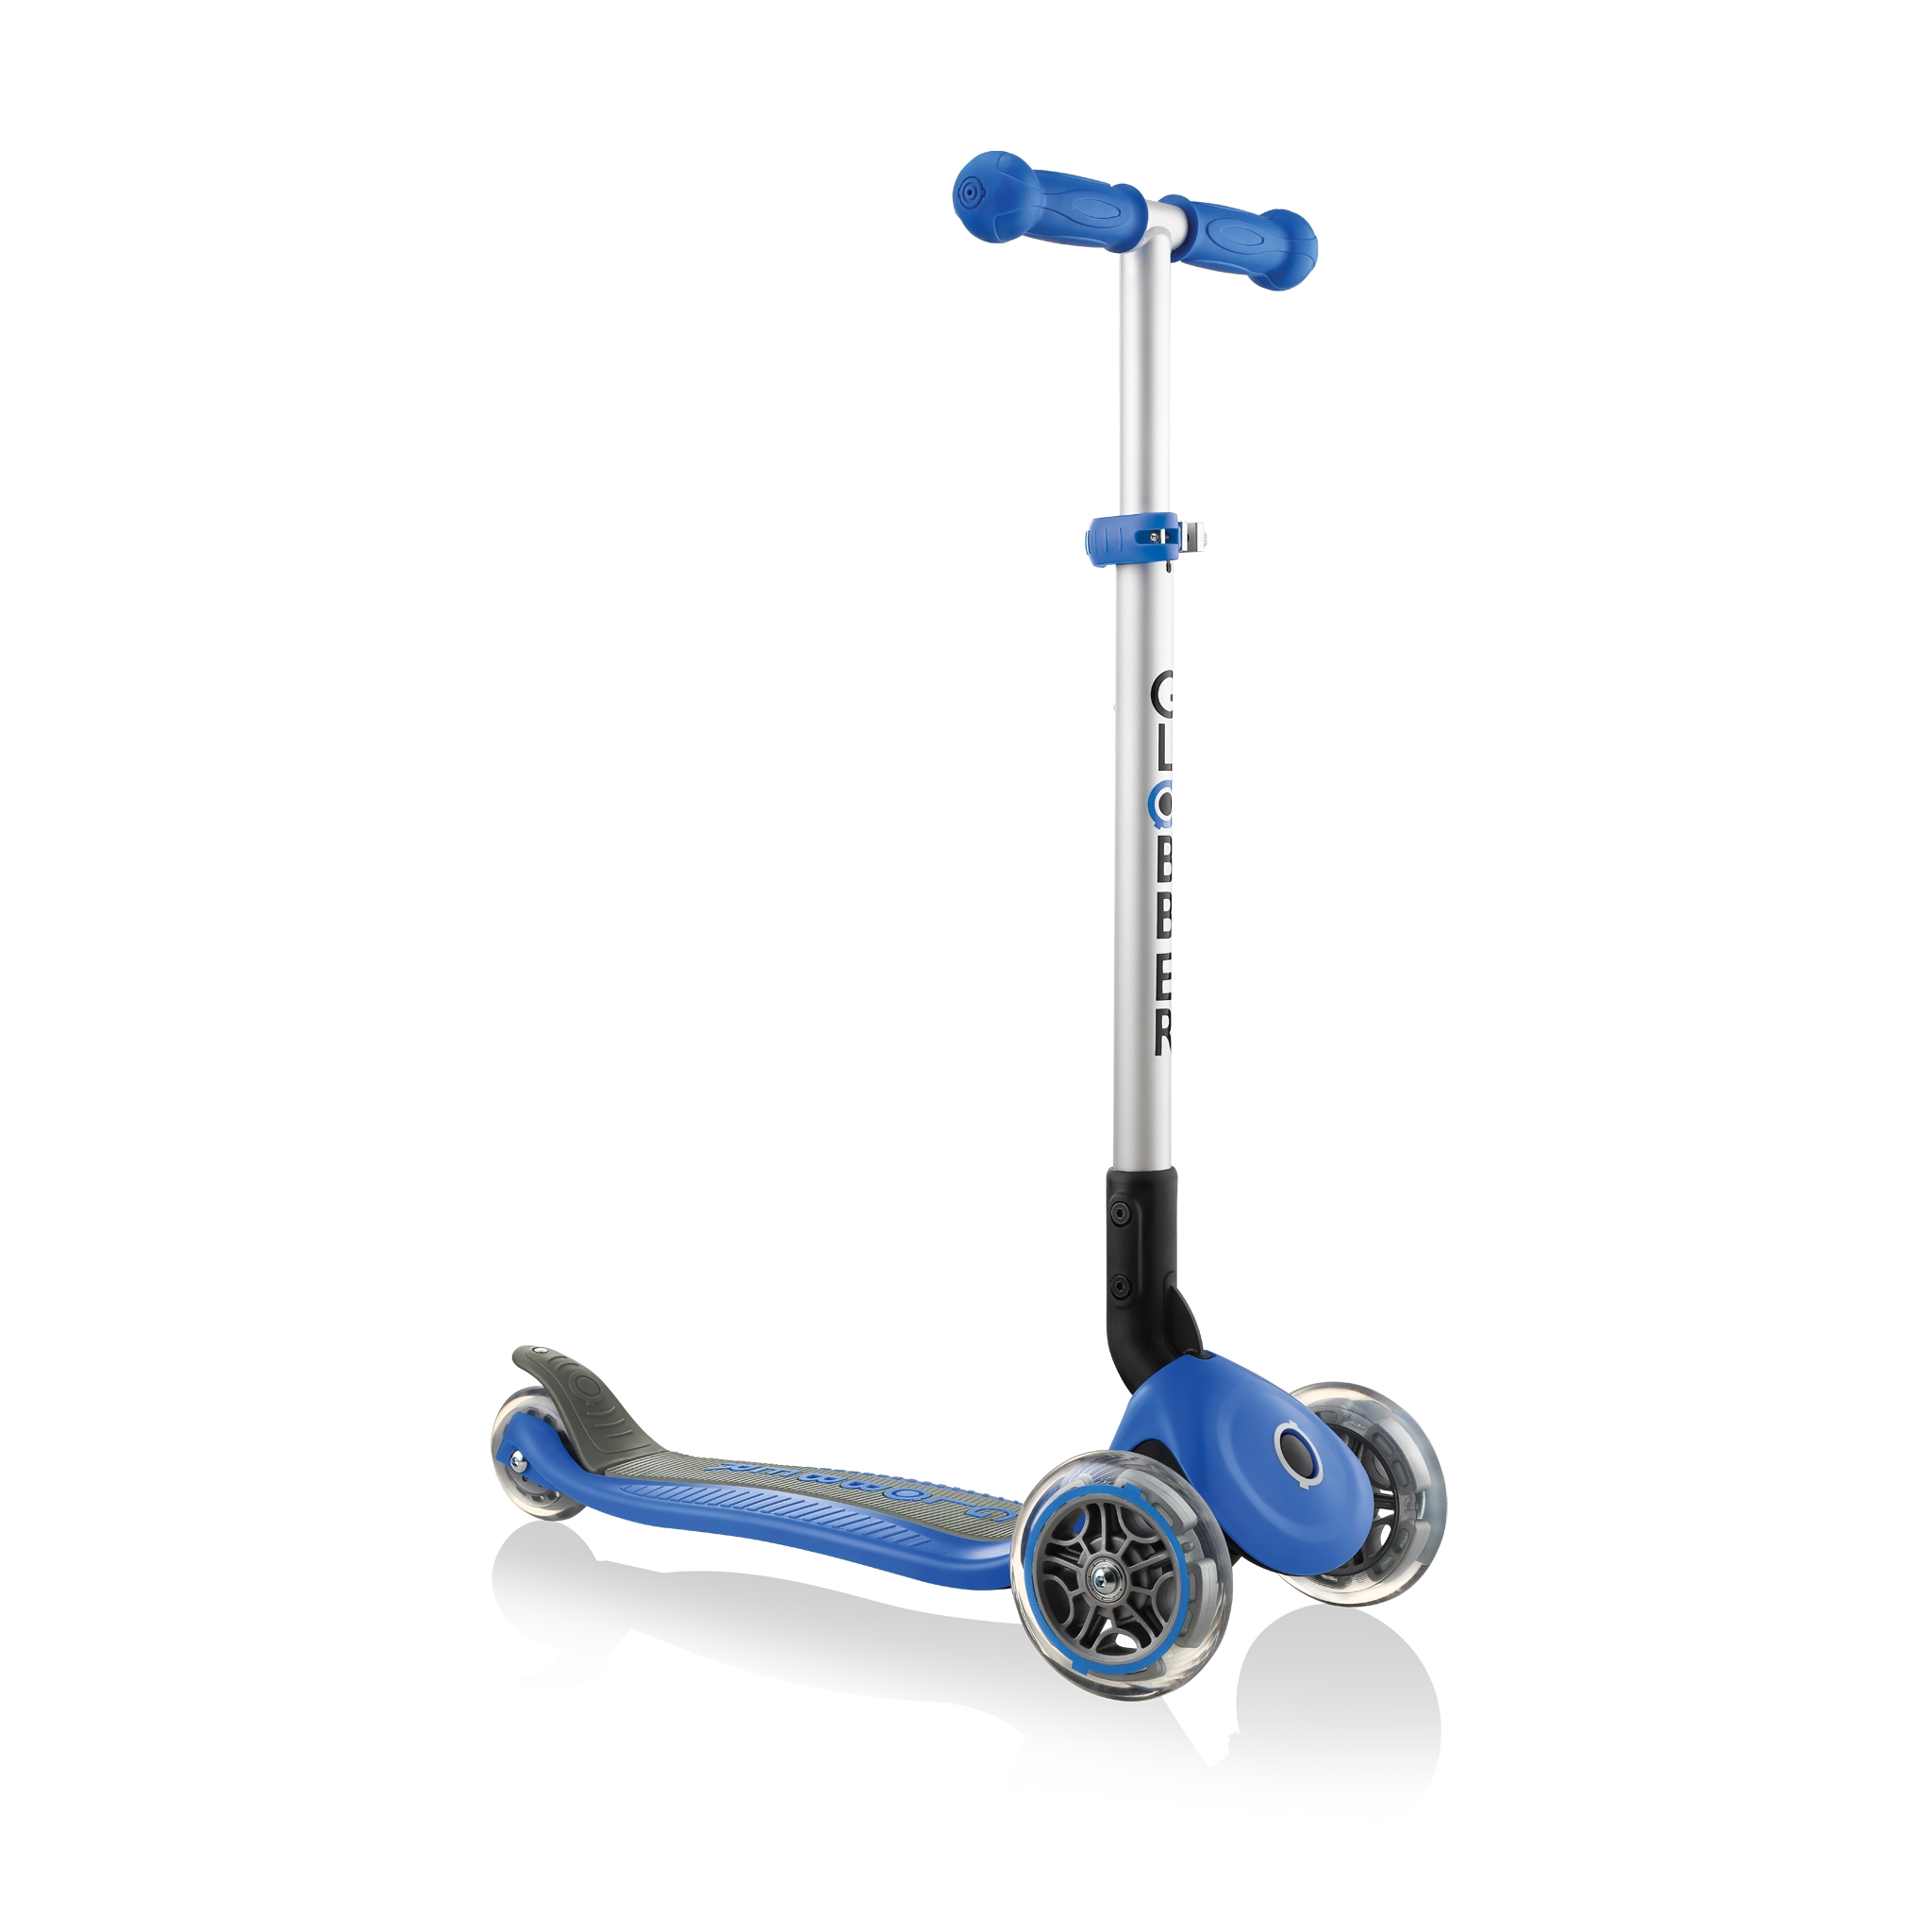 PRIMO-FOLDABLE-3-wheel-foldable-scooter-for-kids-navy-blue